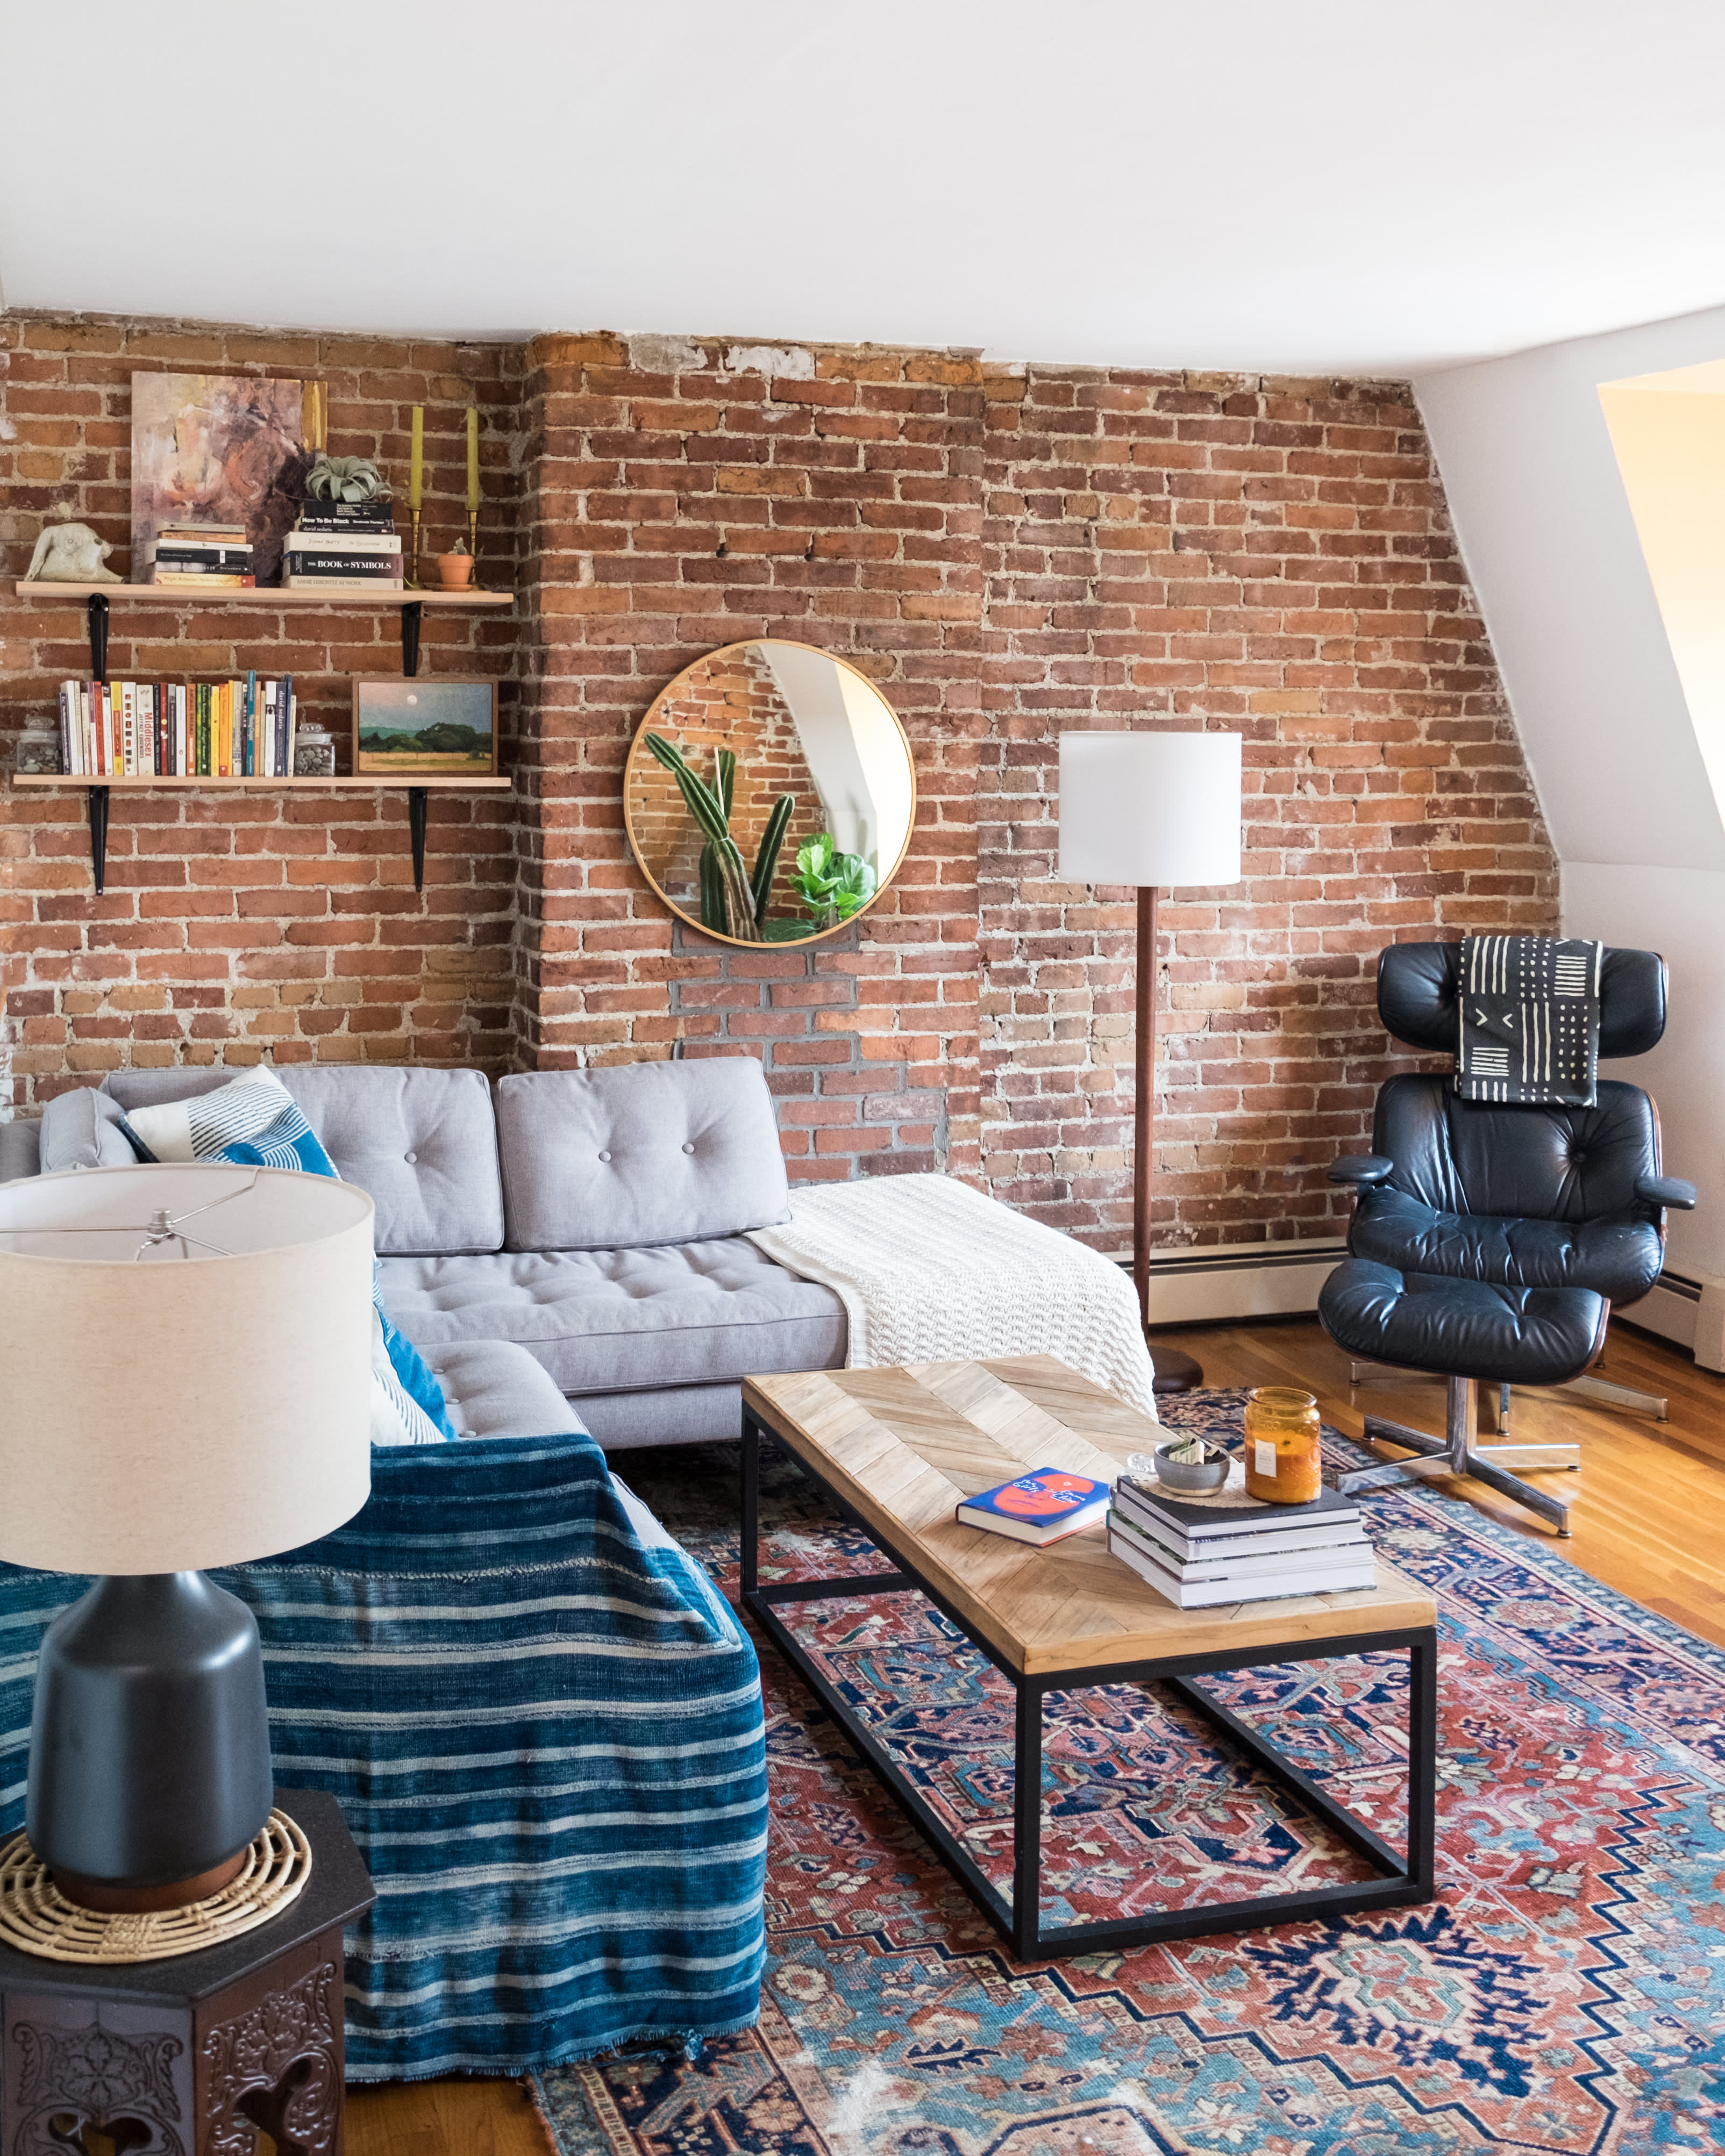 Craigslist Boston Apartments: House Tour: Successful Rental Search In The Heart Of